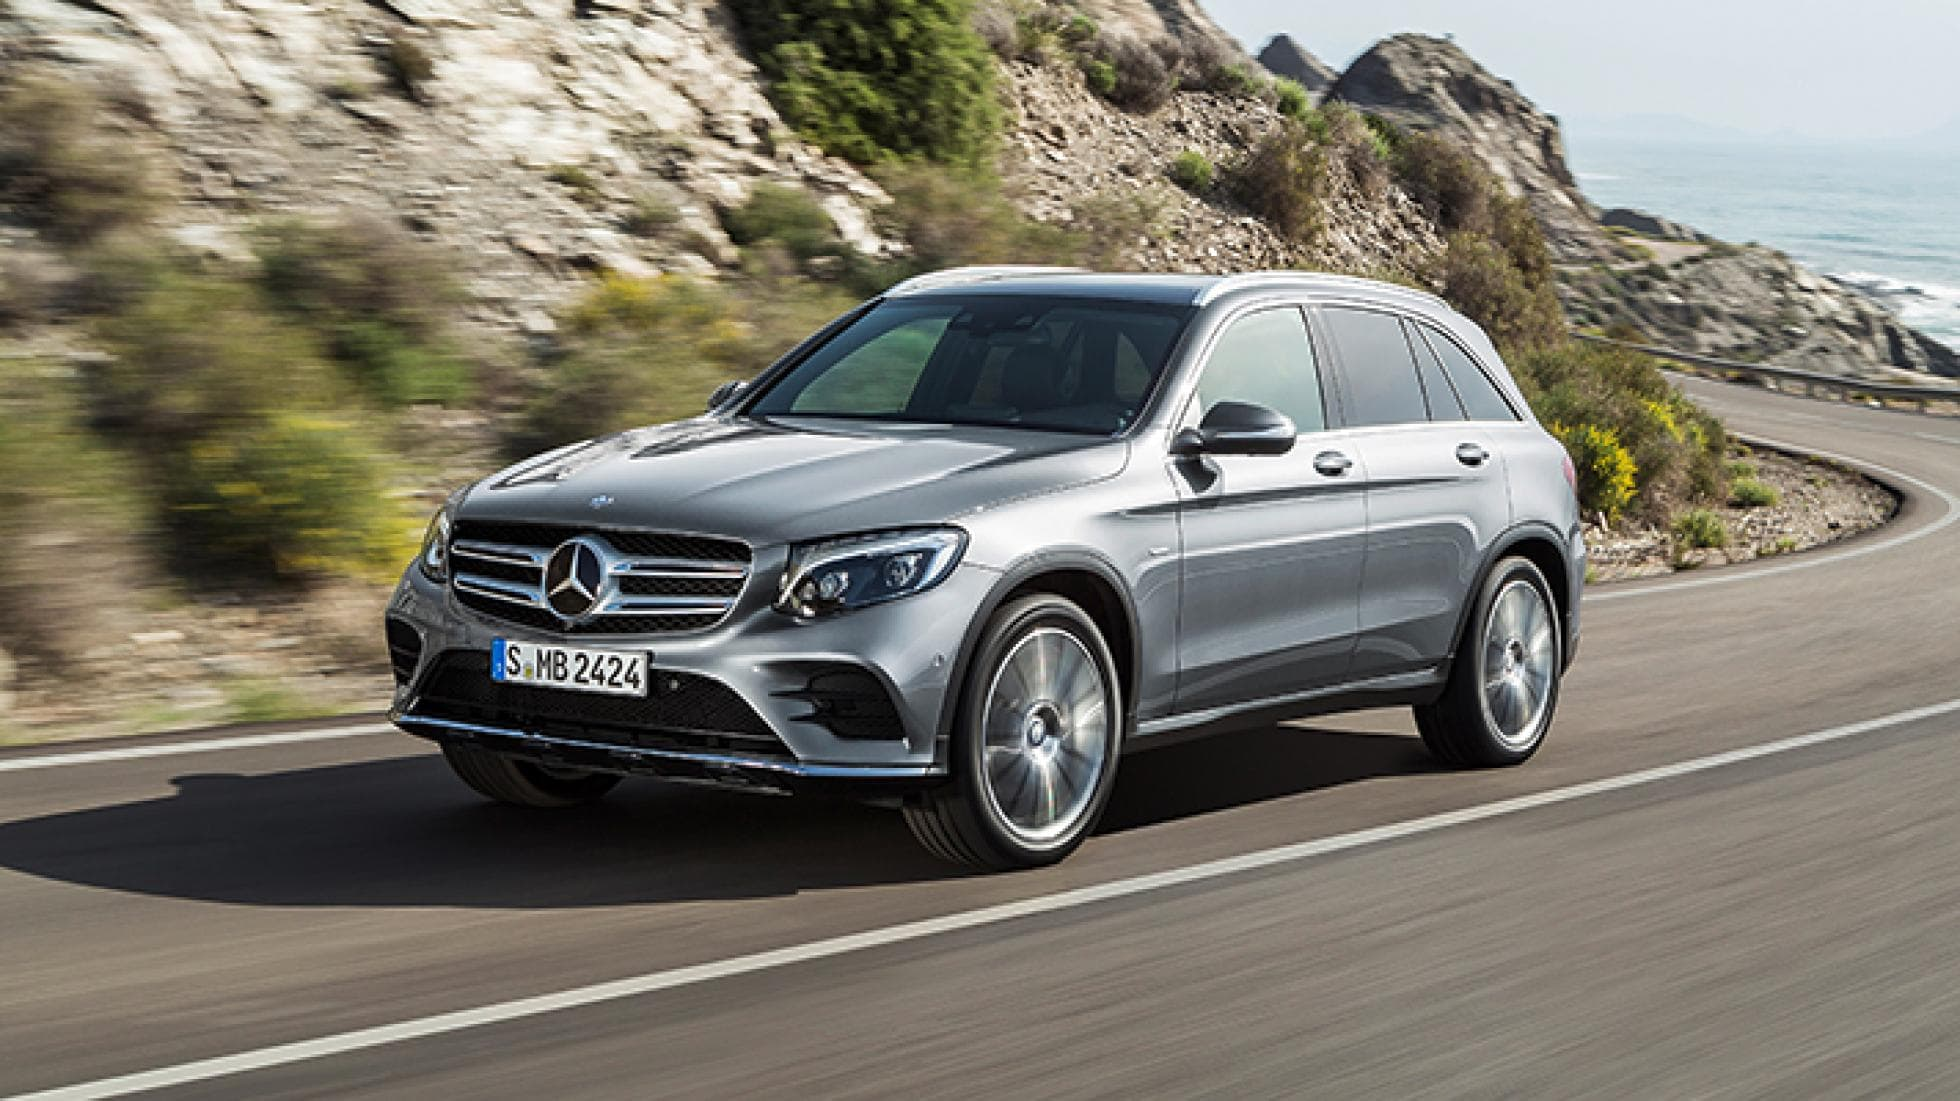 Mercedes GLC widescreen wallpapers